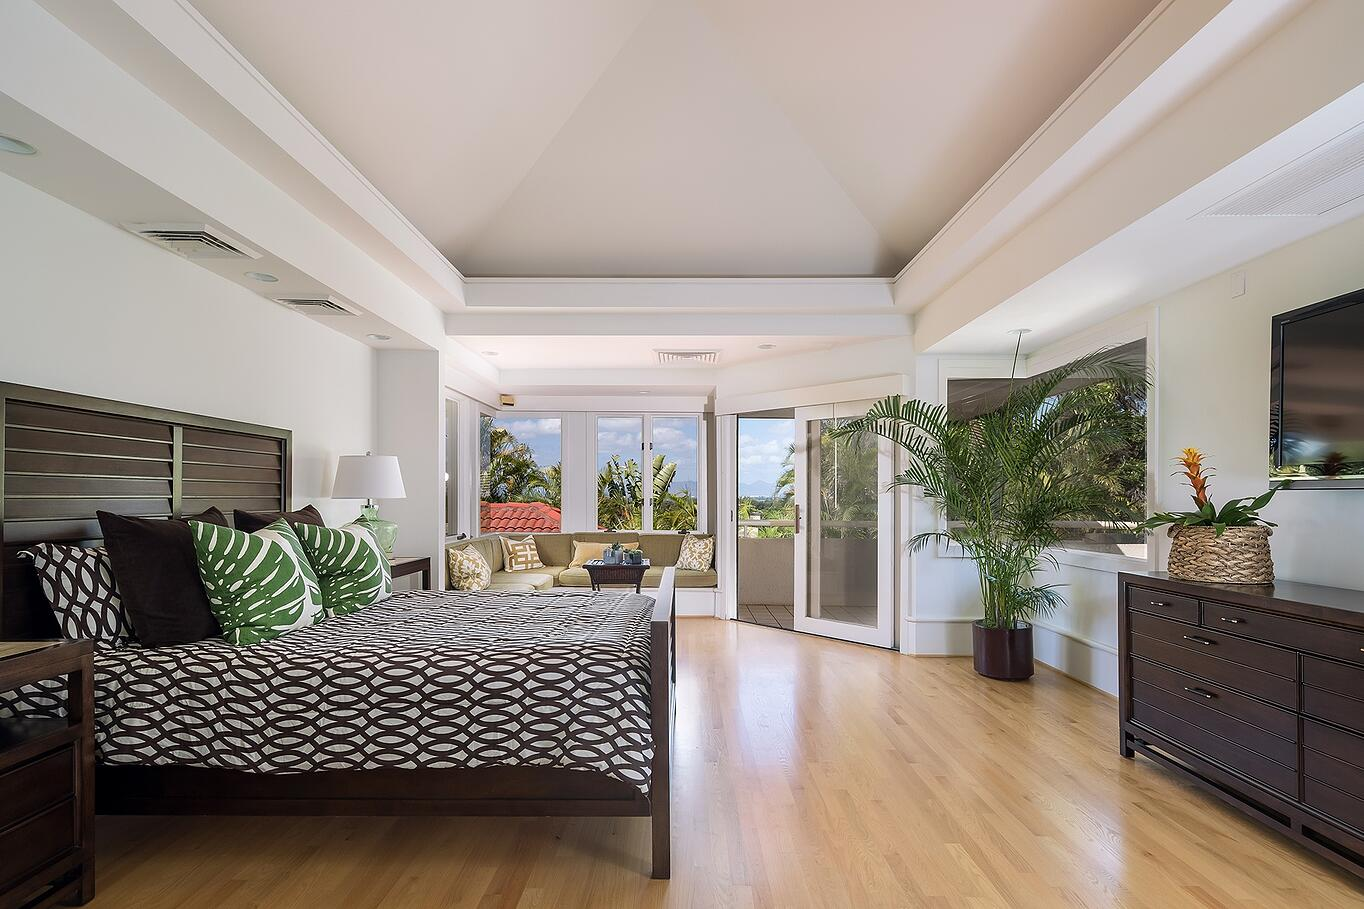 This master suite enjoys clean lines and an outdoor balcony. Photograph: Mark Singer Photography